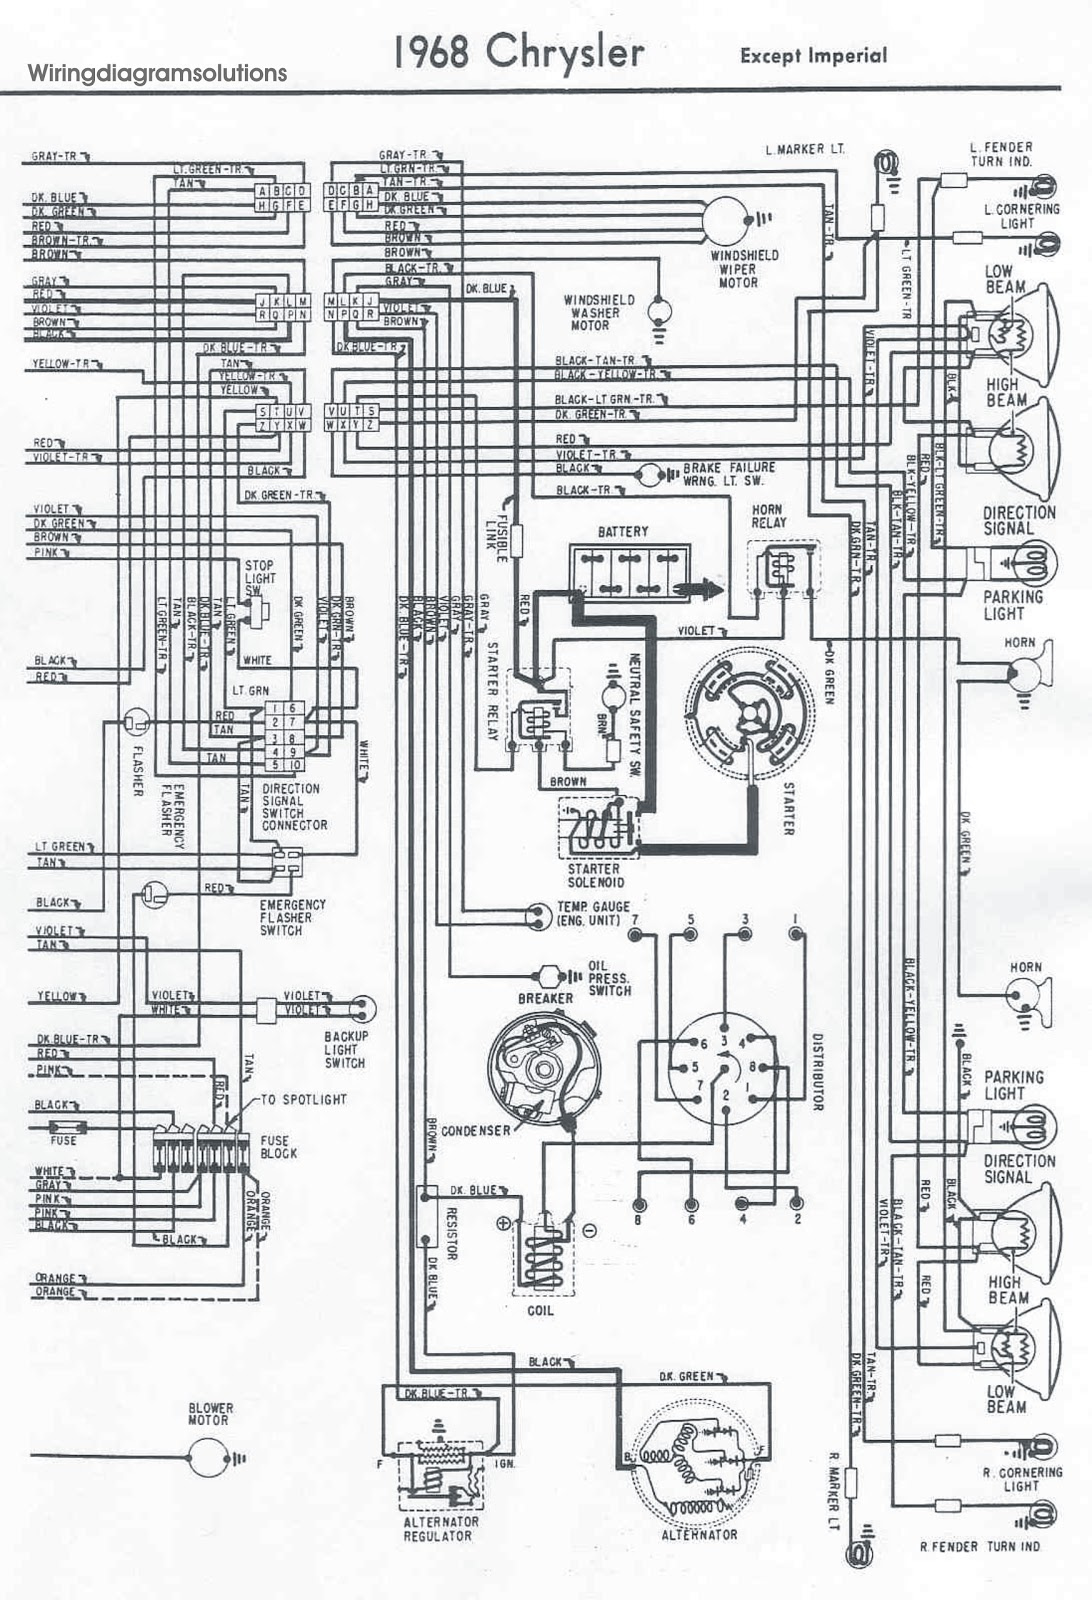 2011 Ford Crown Victoria Fuse Diagram 1968 S Chrysler All Models Electrical Wiring Diagram